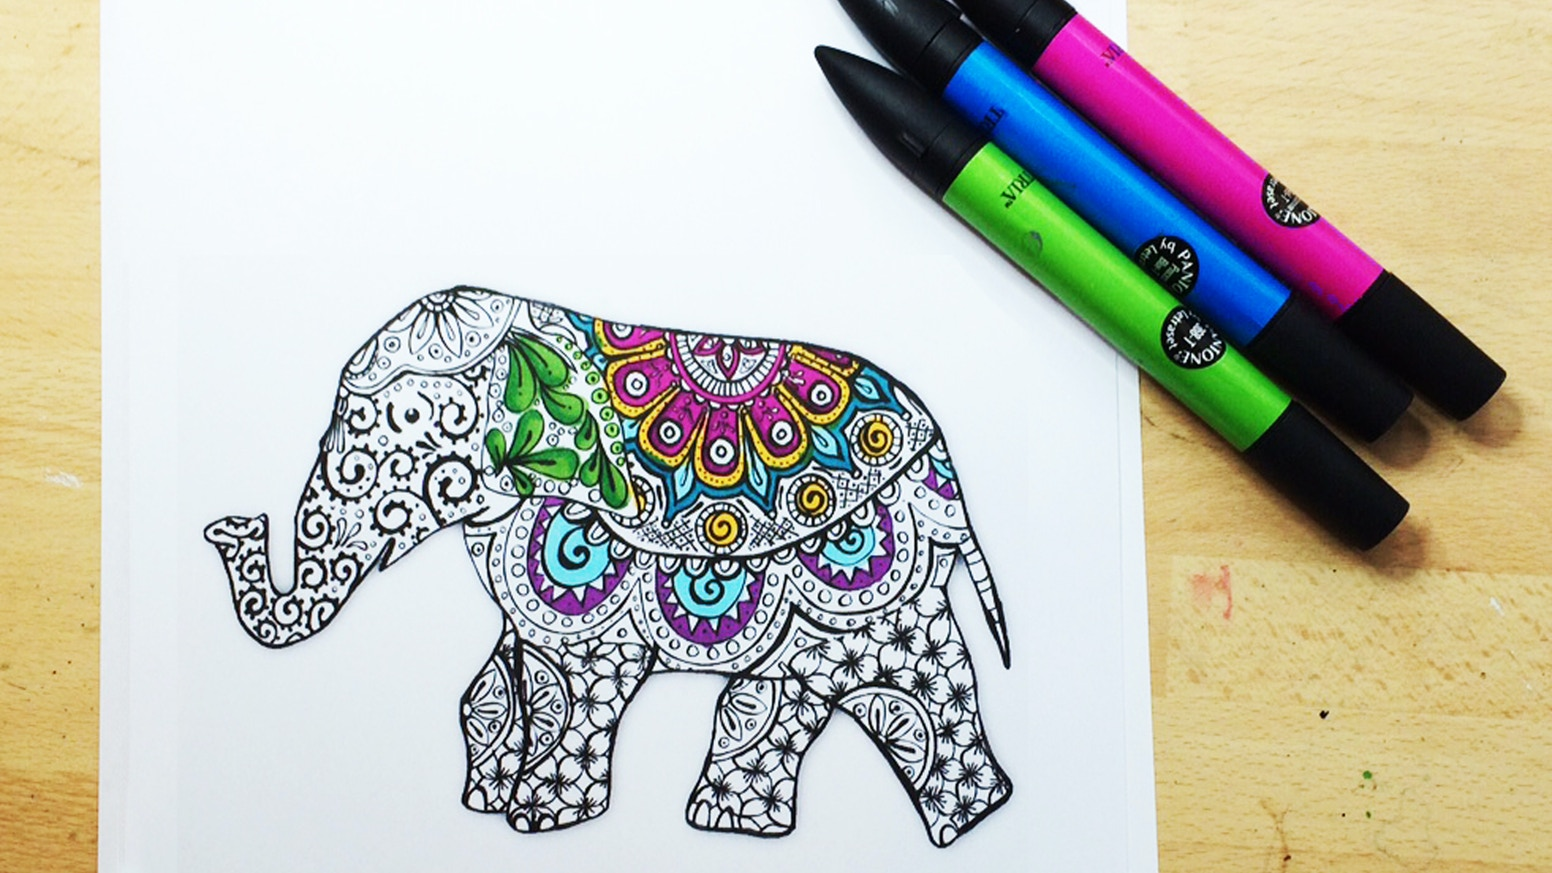 A Beautiful Coloring Book For Teens And Adults Full Of Detailed Whimsical Designs